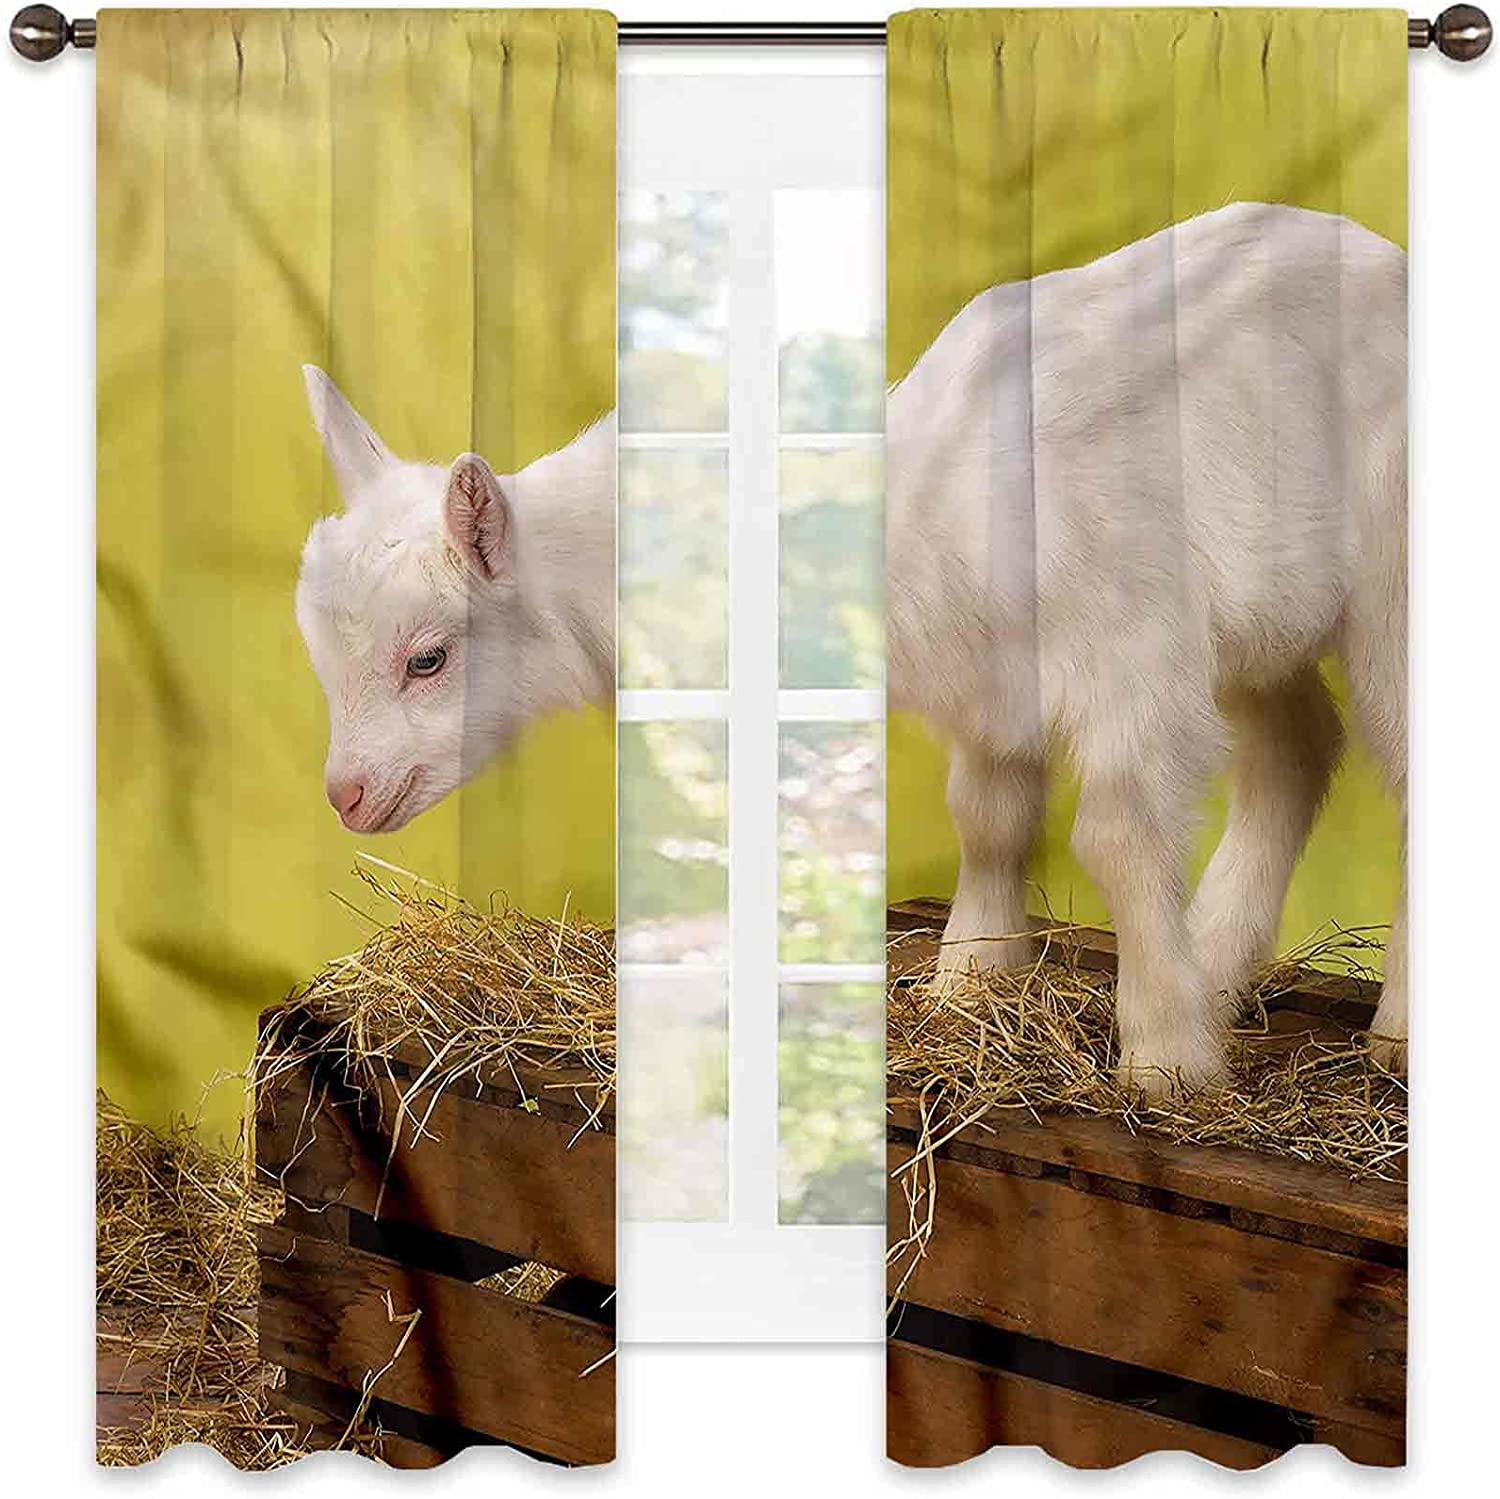 Goat Shading Special price Special price Insulated Curtain Baby Hay Soun with Animal Crate